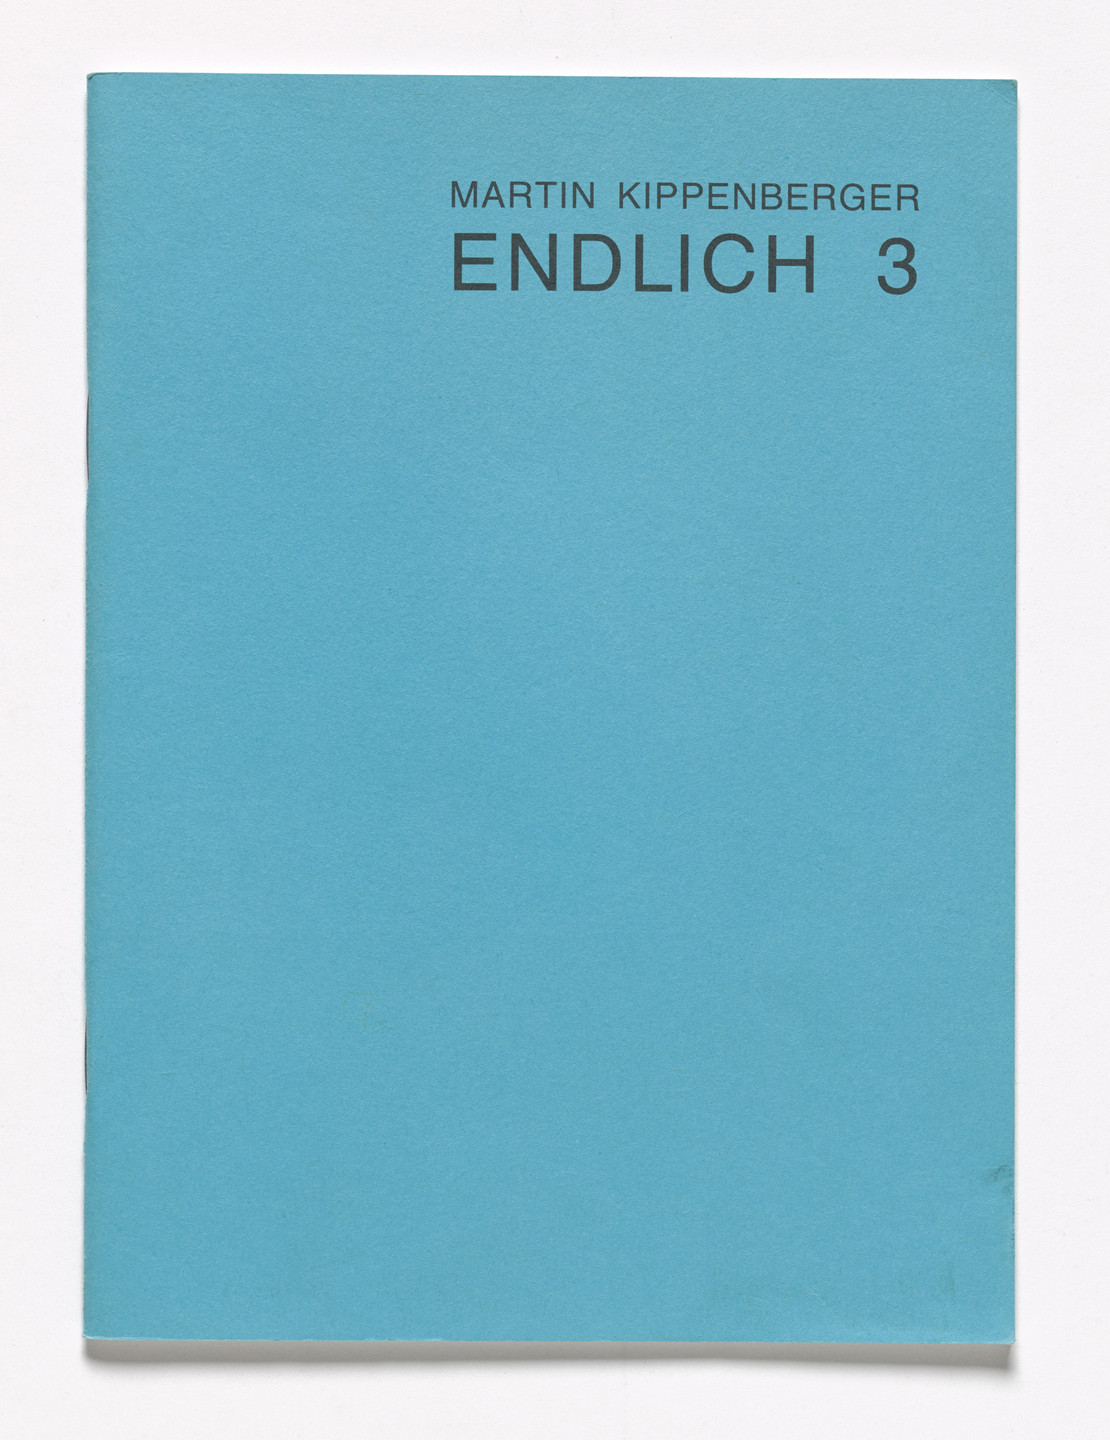 Martin Kippenberger. Endlich 3, Finally 3. 1986